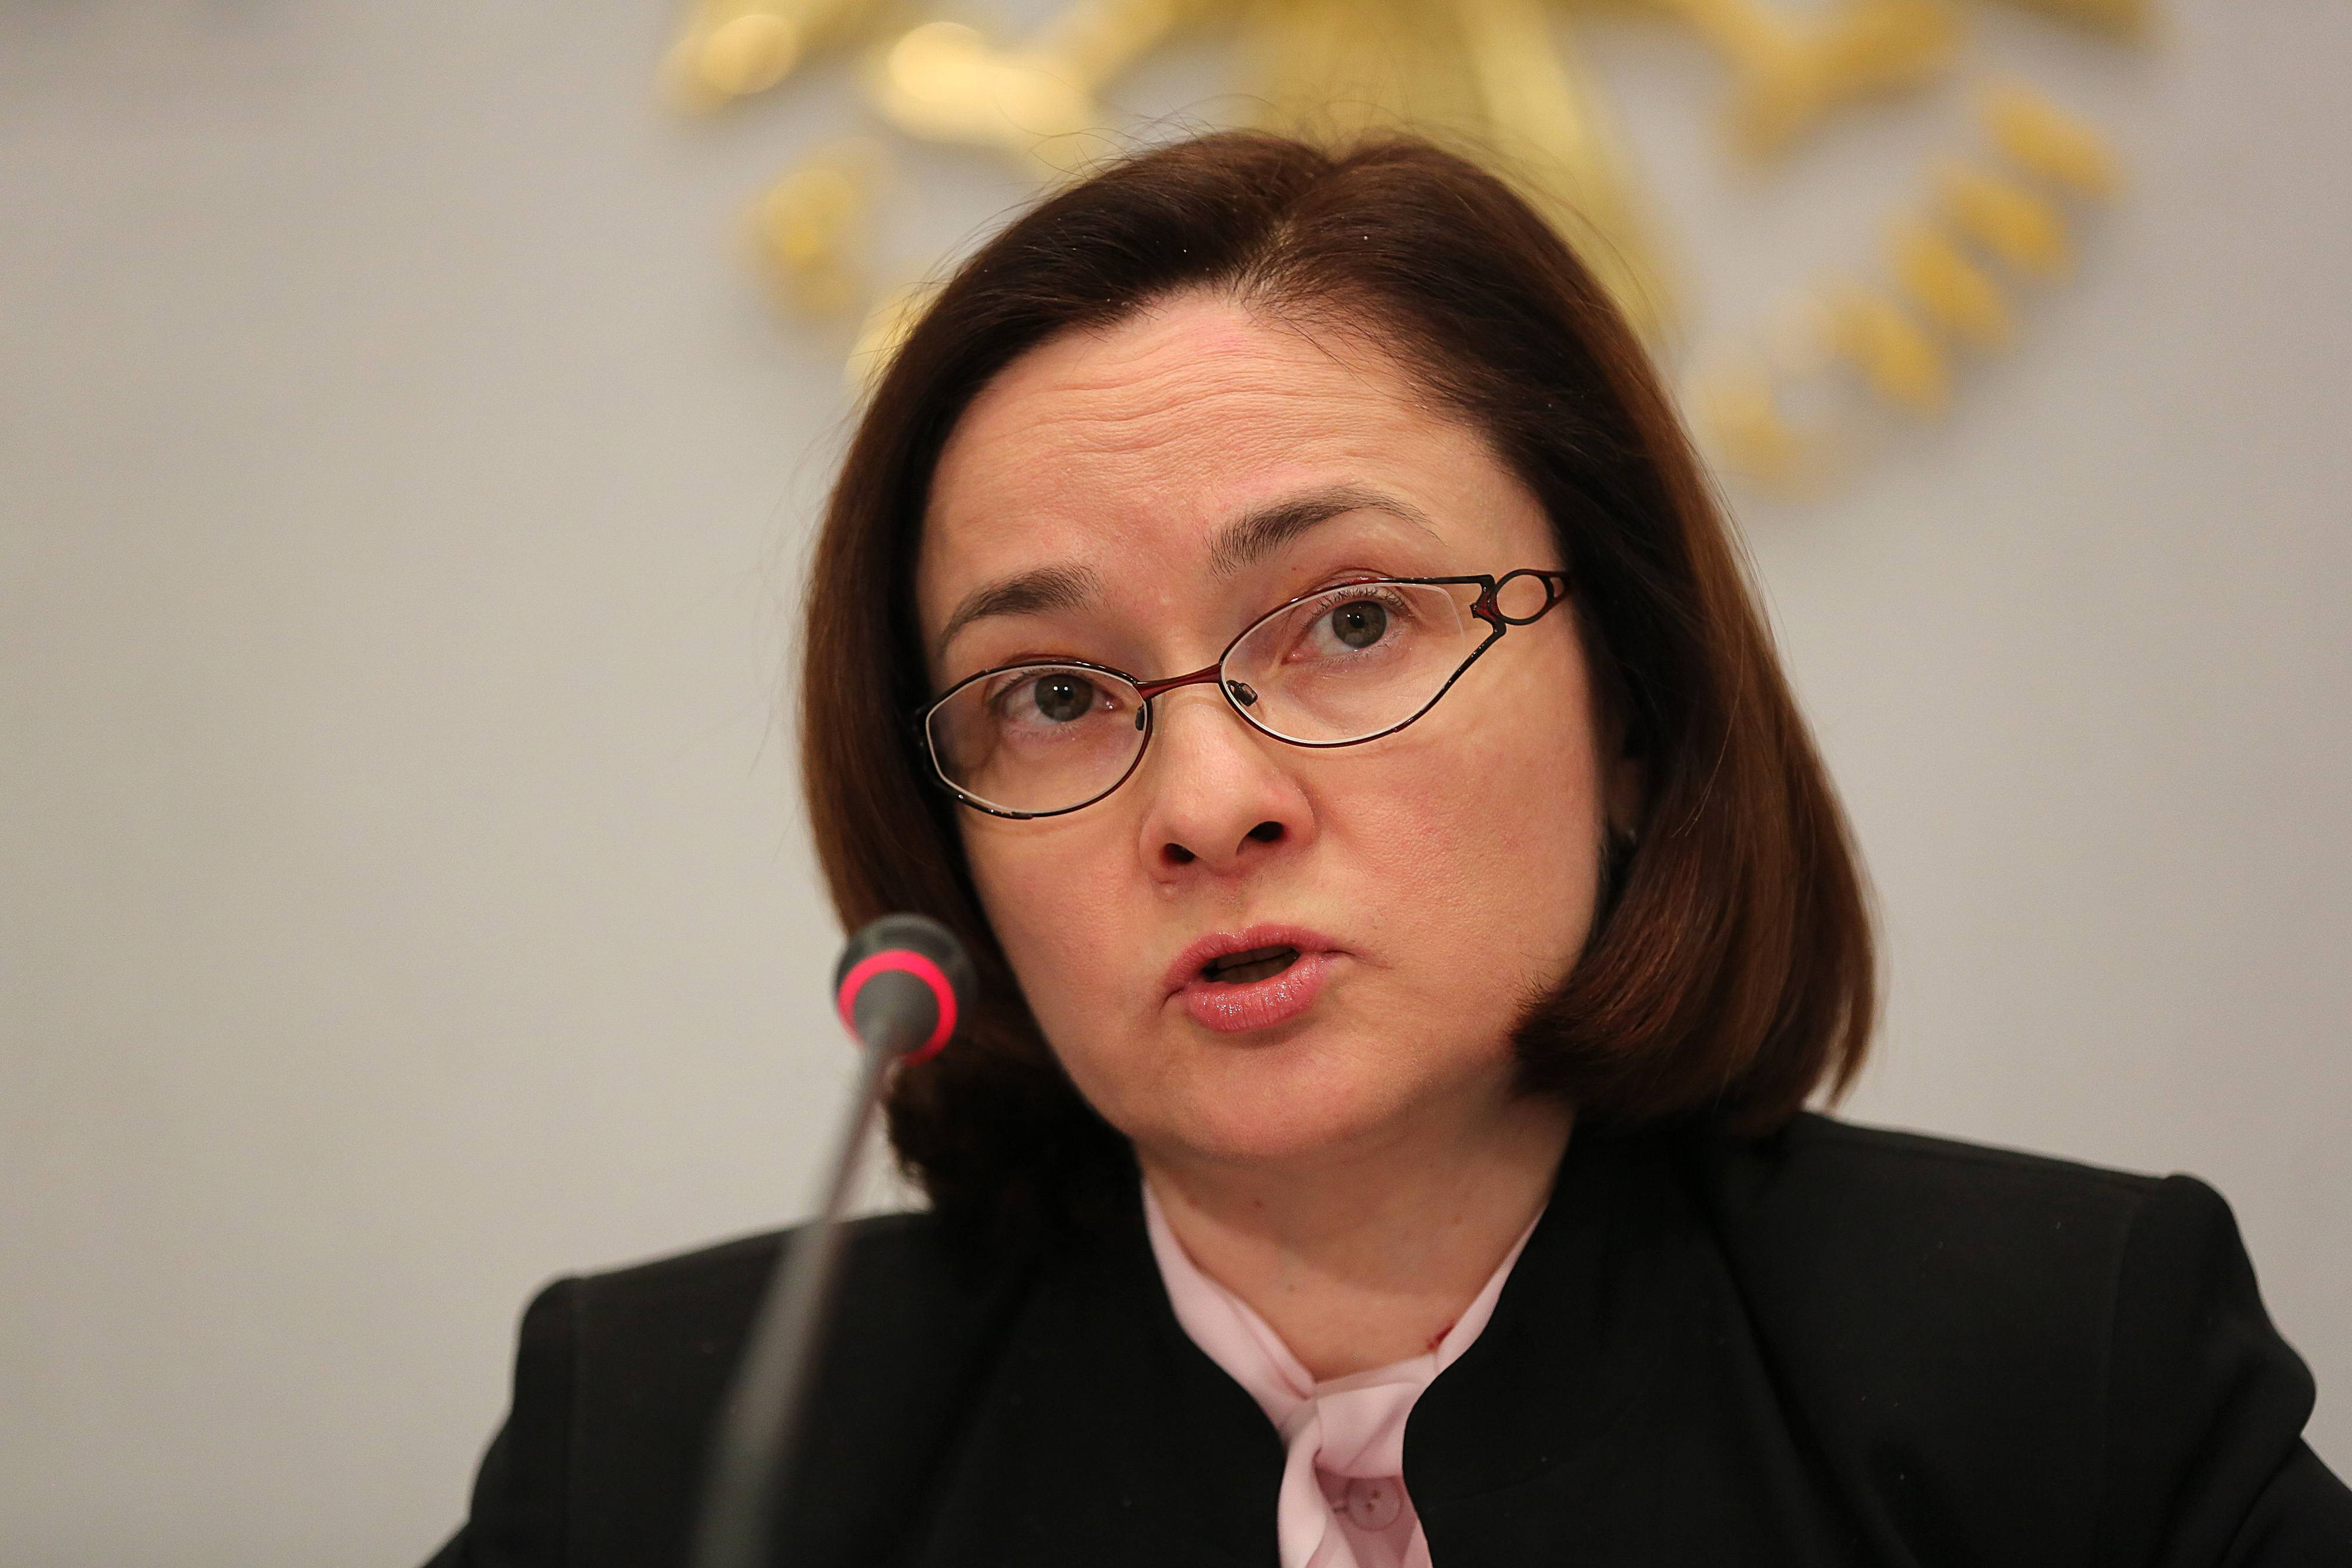 Elvira Nabiullina, chairman of Russia's central bank, speaks during a briefing at the headquarters of Bank Rossii in Moscow, Russia, on Friday, Feb. 14, 2014. Nabiullina signaled readiness to follow countries including India, Turkey and South Africa in tightening monetary policy after the ruble's plunge to a record low this month increased inflation risks.